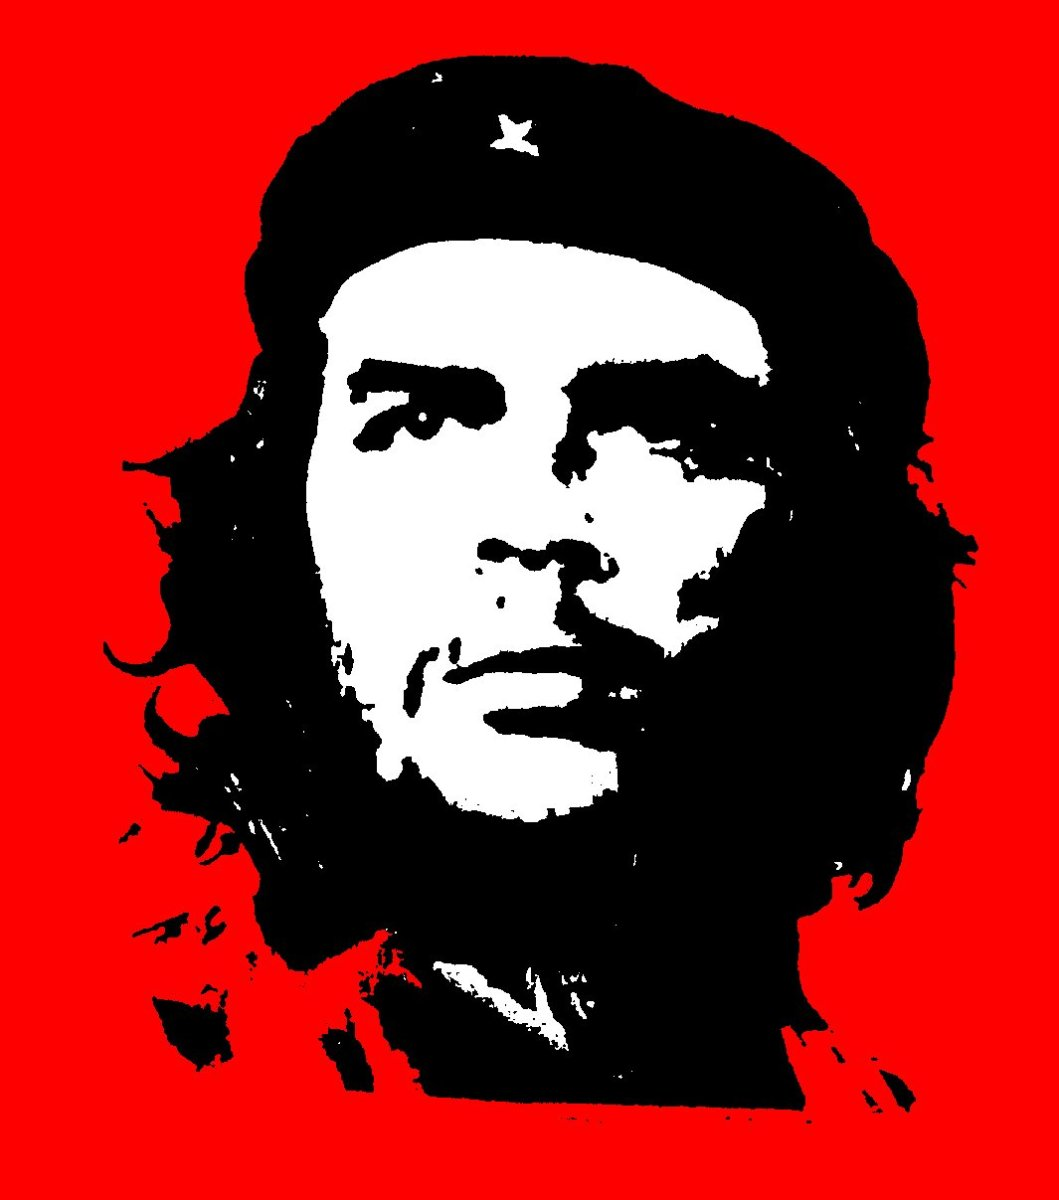 POPULAR IMAGE FOR AMERICAN LEFTISTS ON POSTERS AND TSHIRTS OF CHE GUEVARA